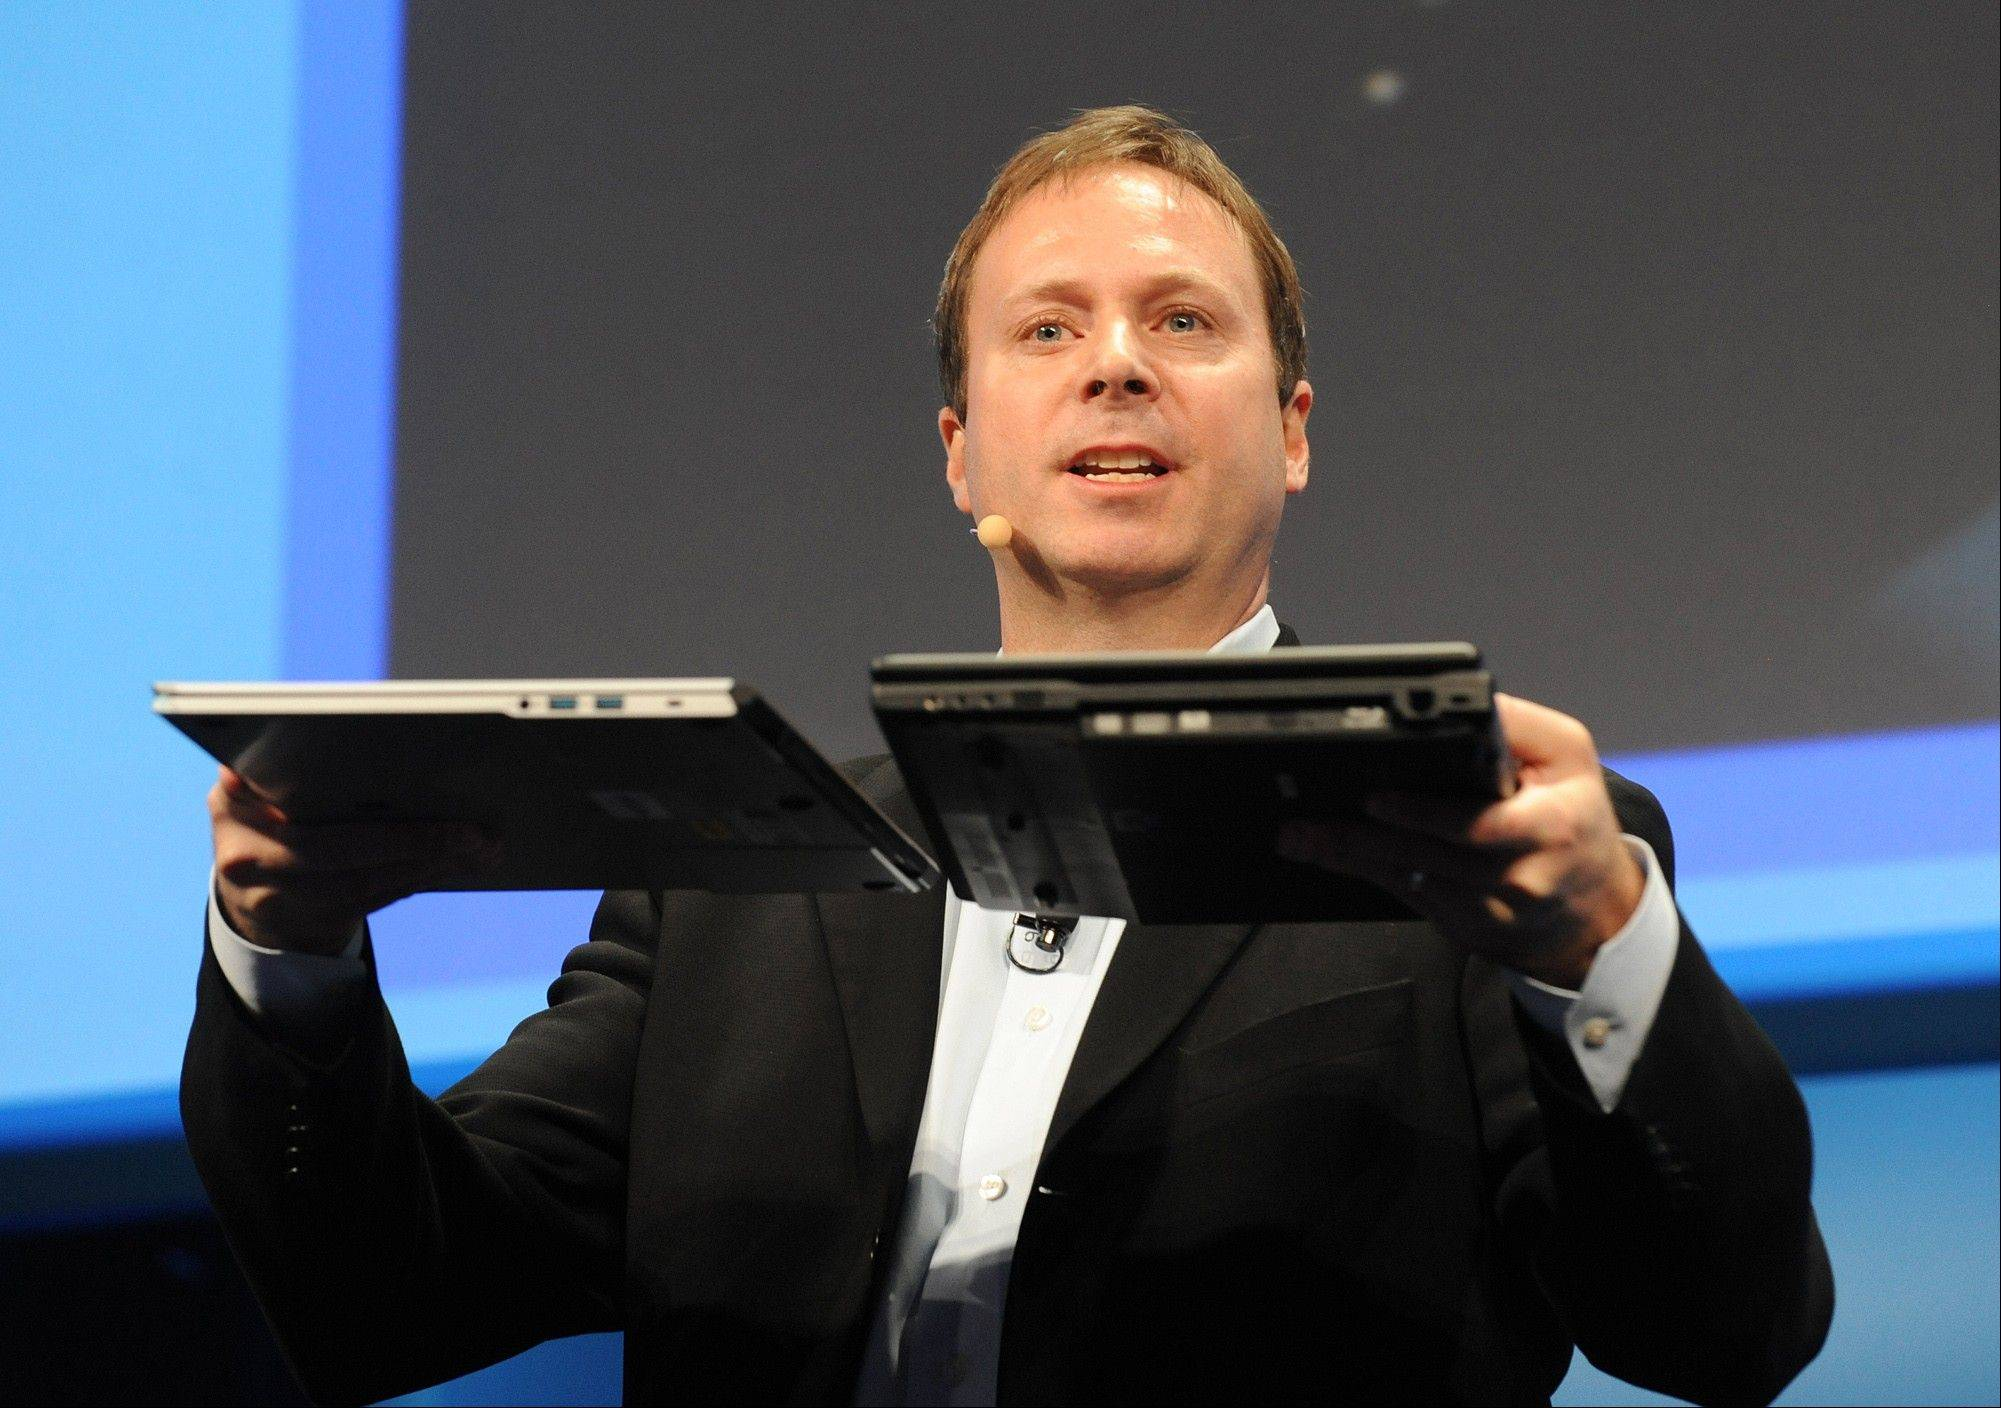 In this photo provided by Intel, Kirk Skaugen, vice president and general manager of Intel�s PC Client Group shows off the new Ultrabook, left, next to an average 3-year-old laptop, at Intel's media briefing prior to opening of Consumer Electronic Show.